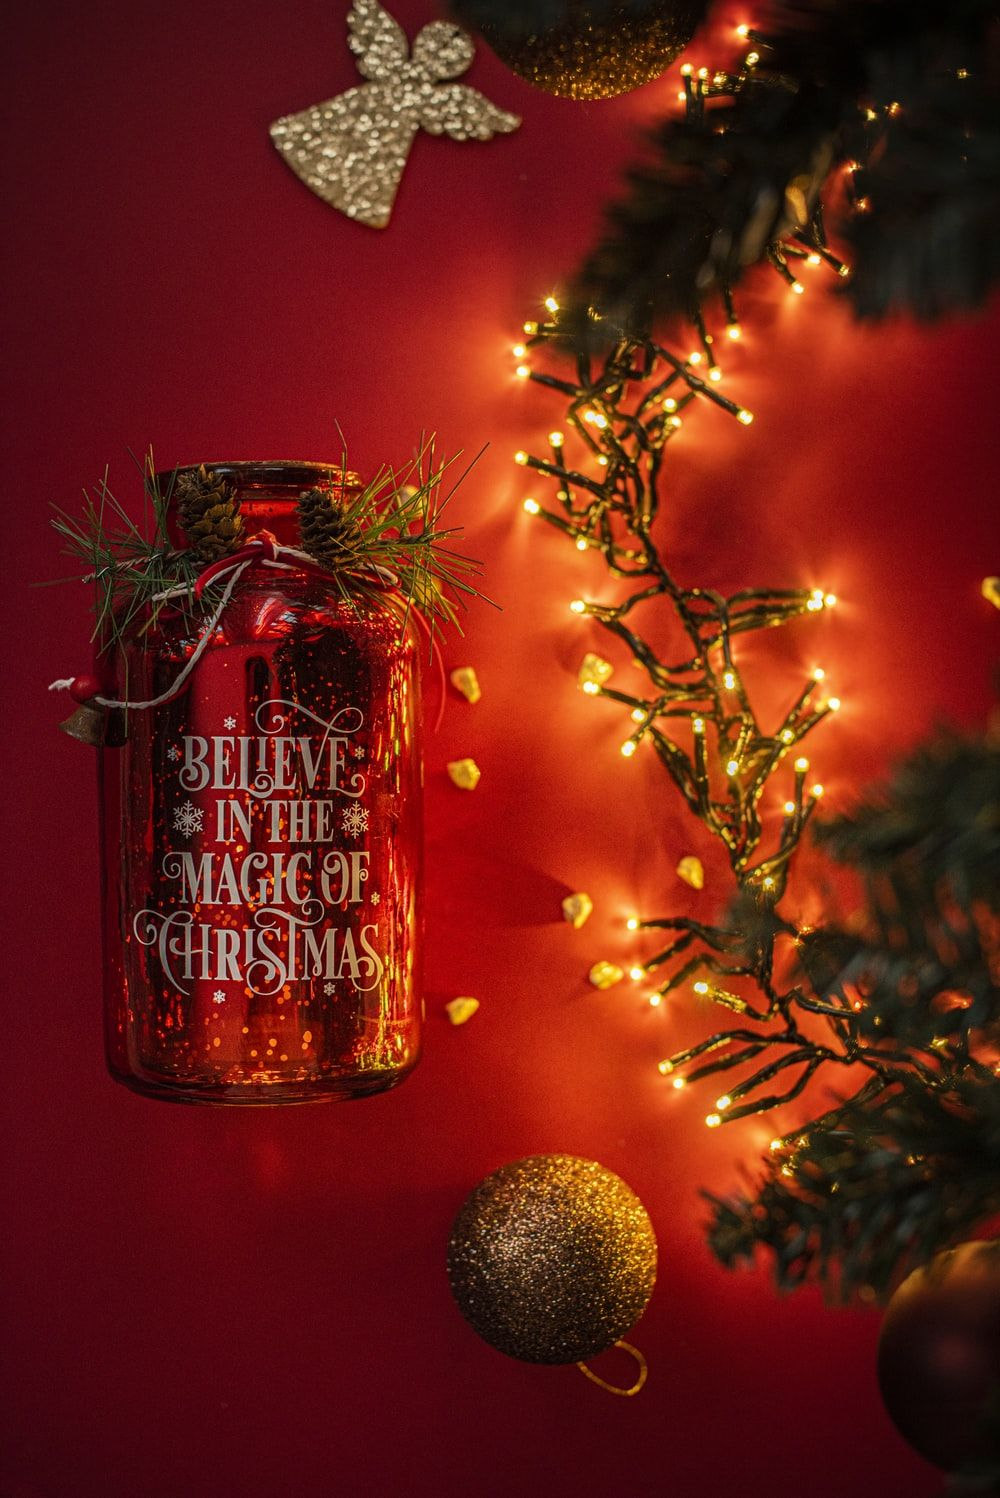 Christmas Cider Bottle With Bright Christmas Lights Pictures Photos And Images For Facebook Tumblr Pinterest And Twitter